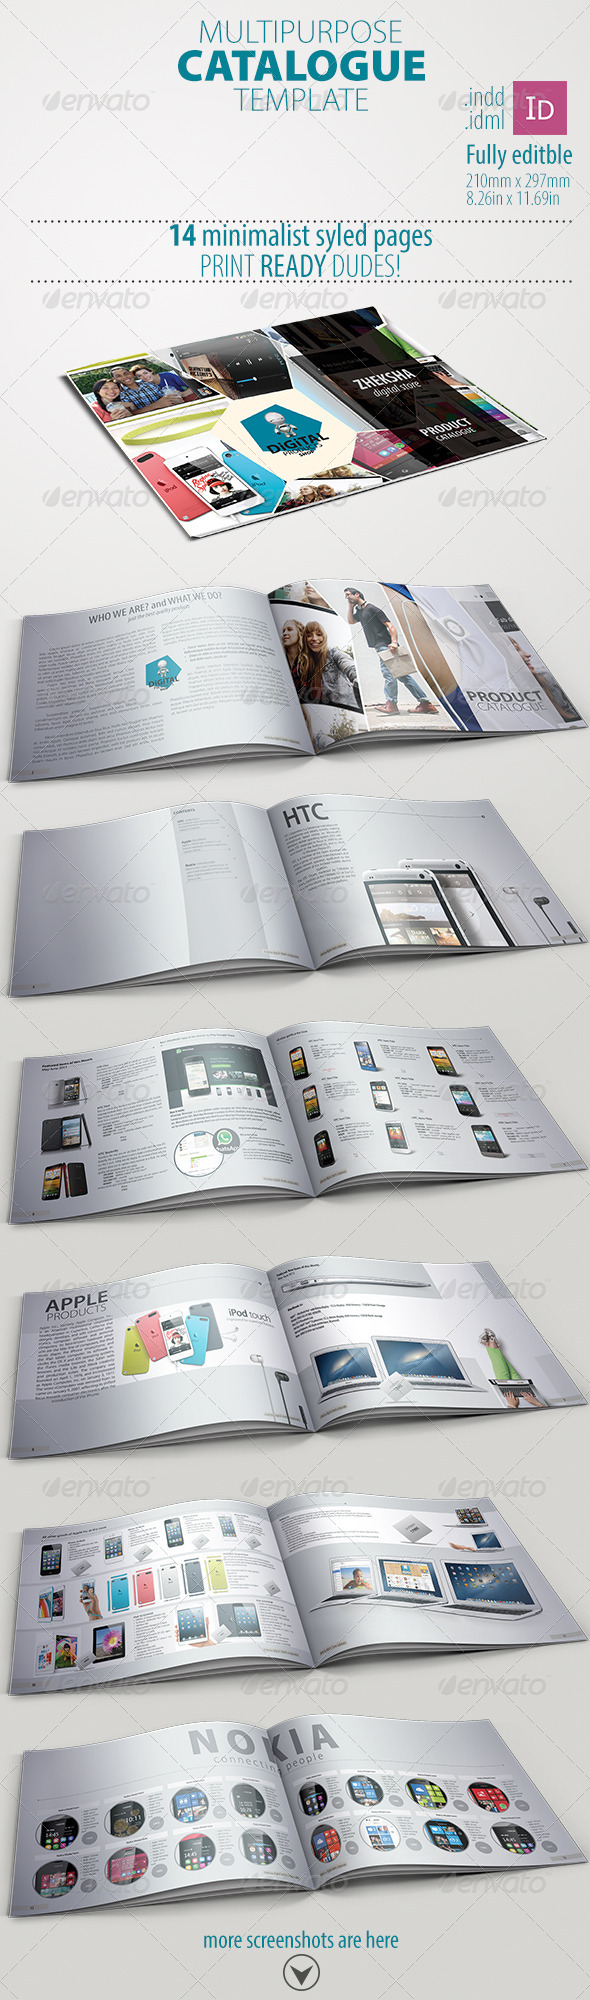 Multipurpose Catalogue - Print Templates